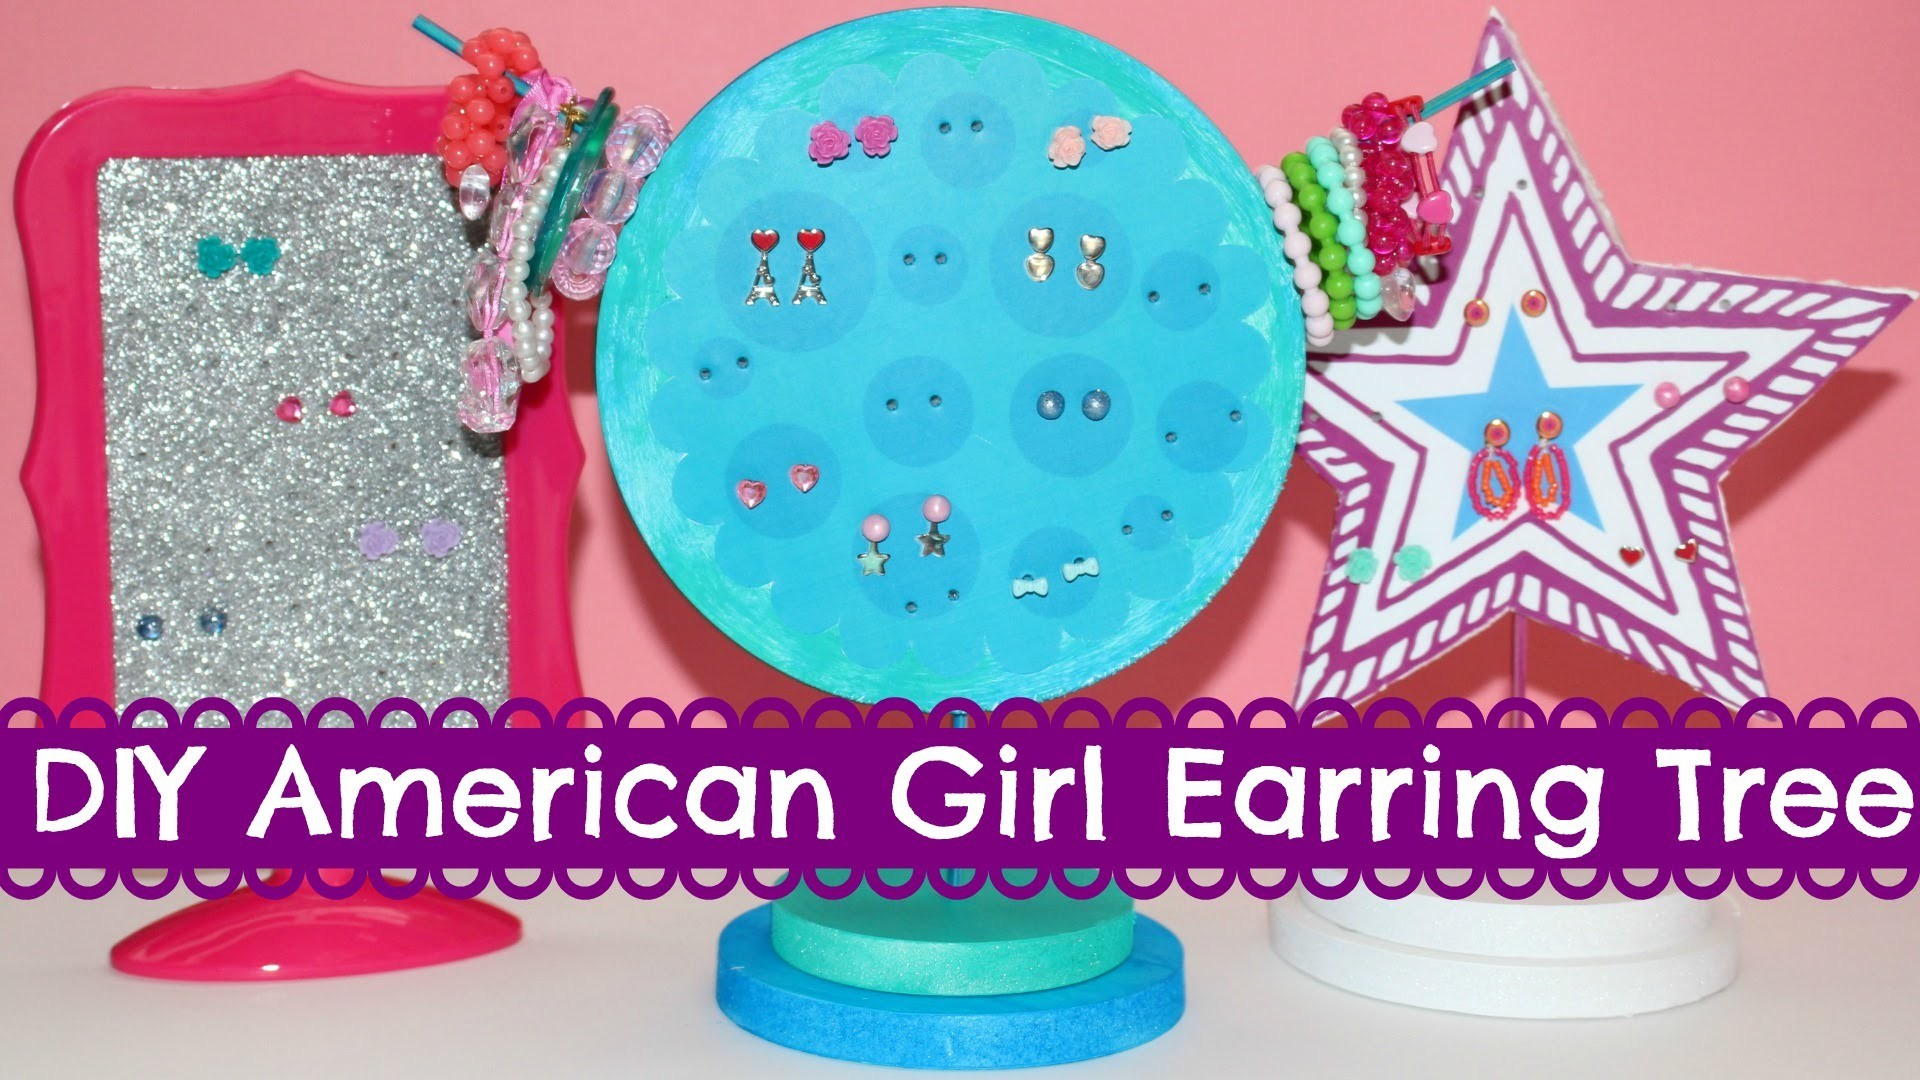 DIY American Girl Earring Tree Craft